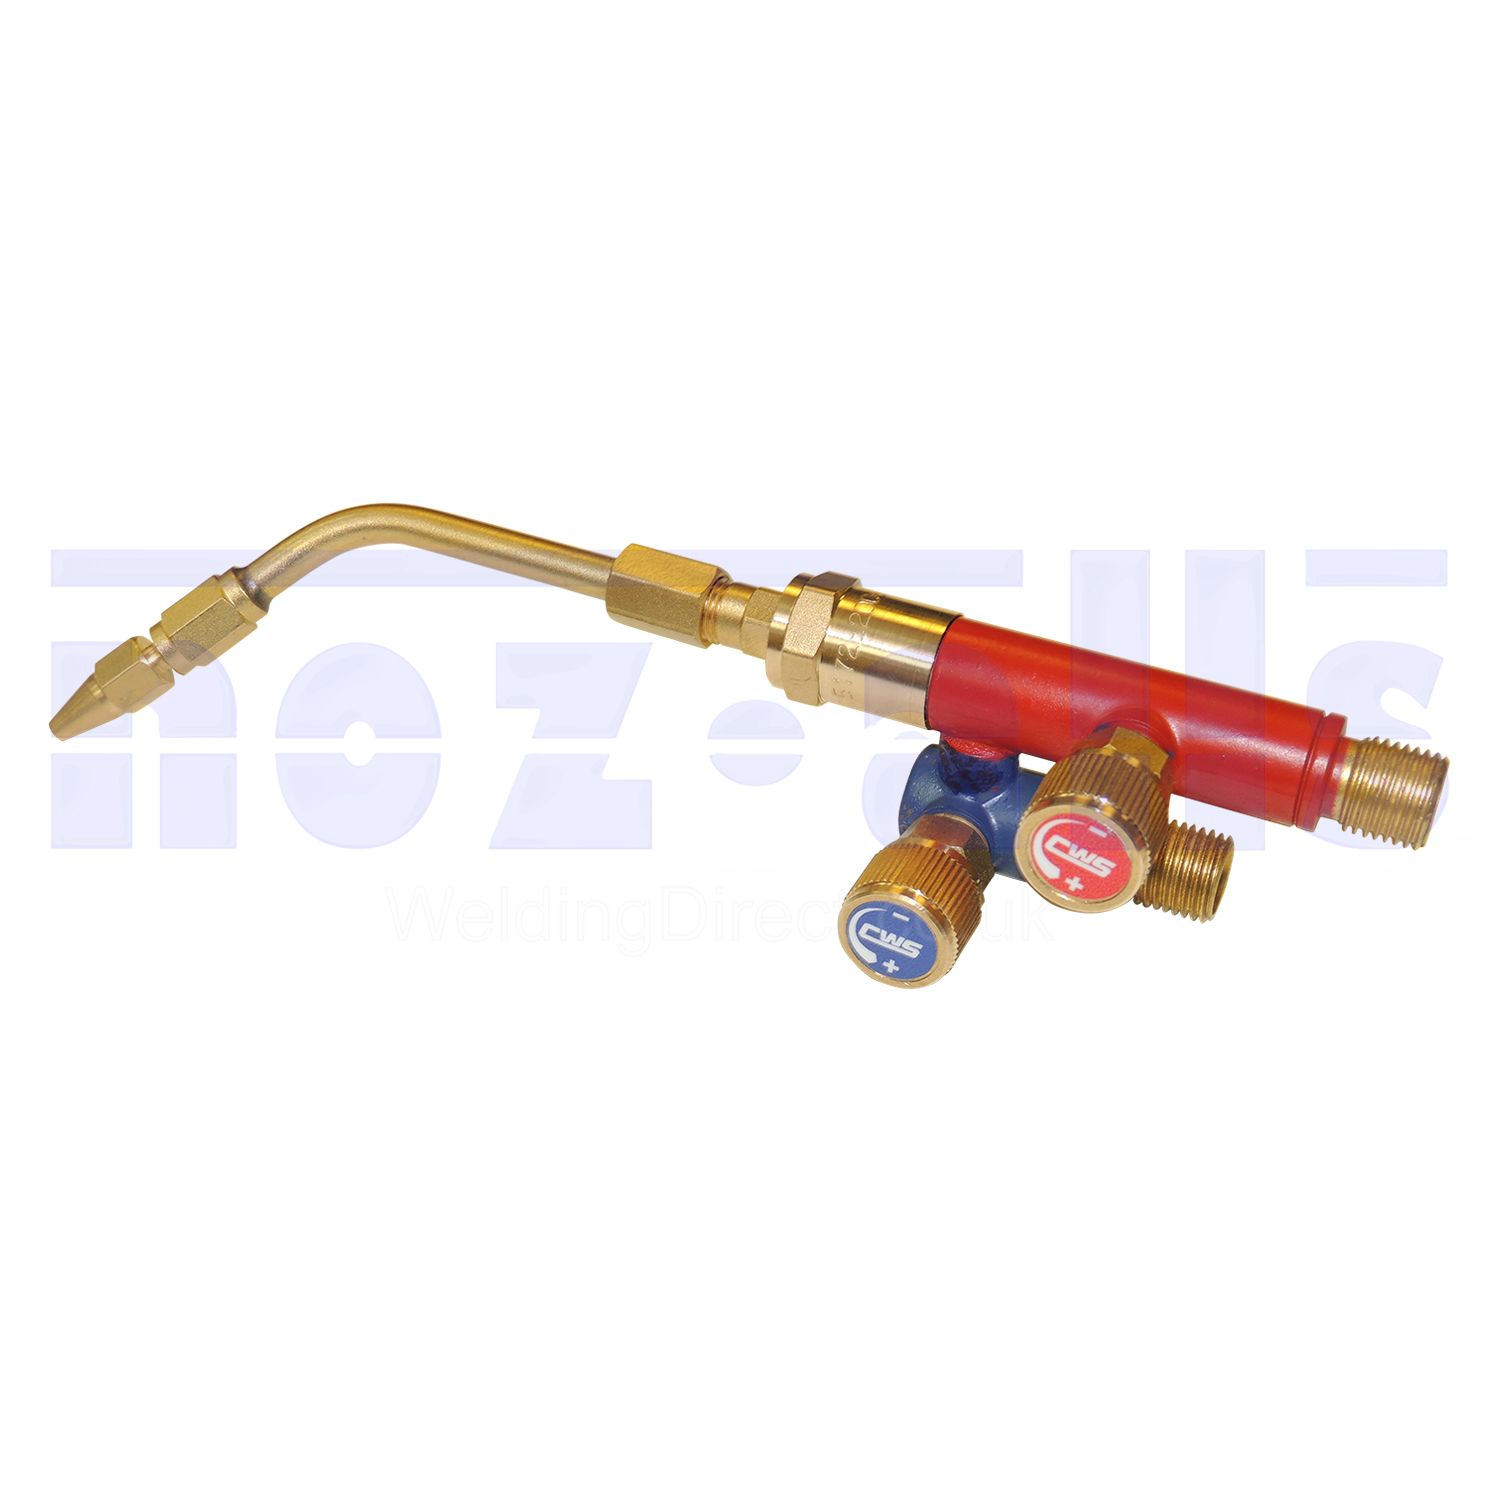 Size 1 Nozzle Model O Welding Tip Made in UK!